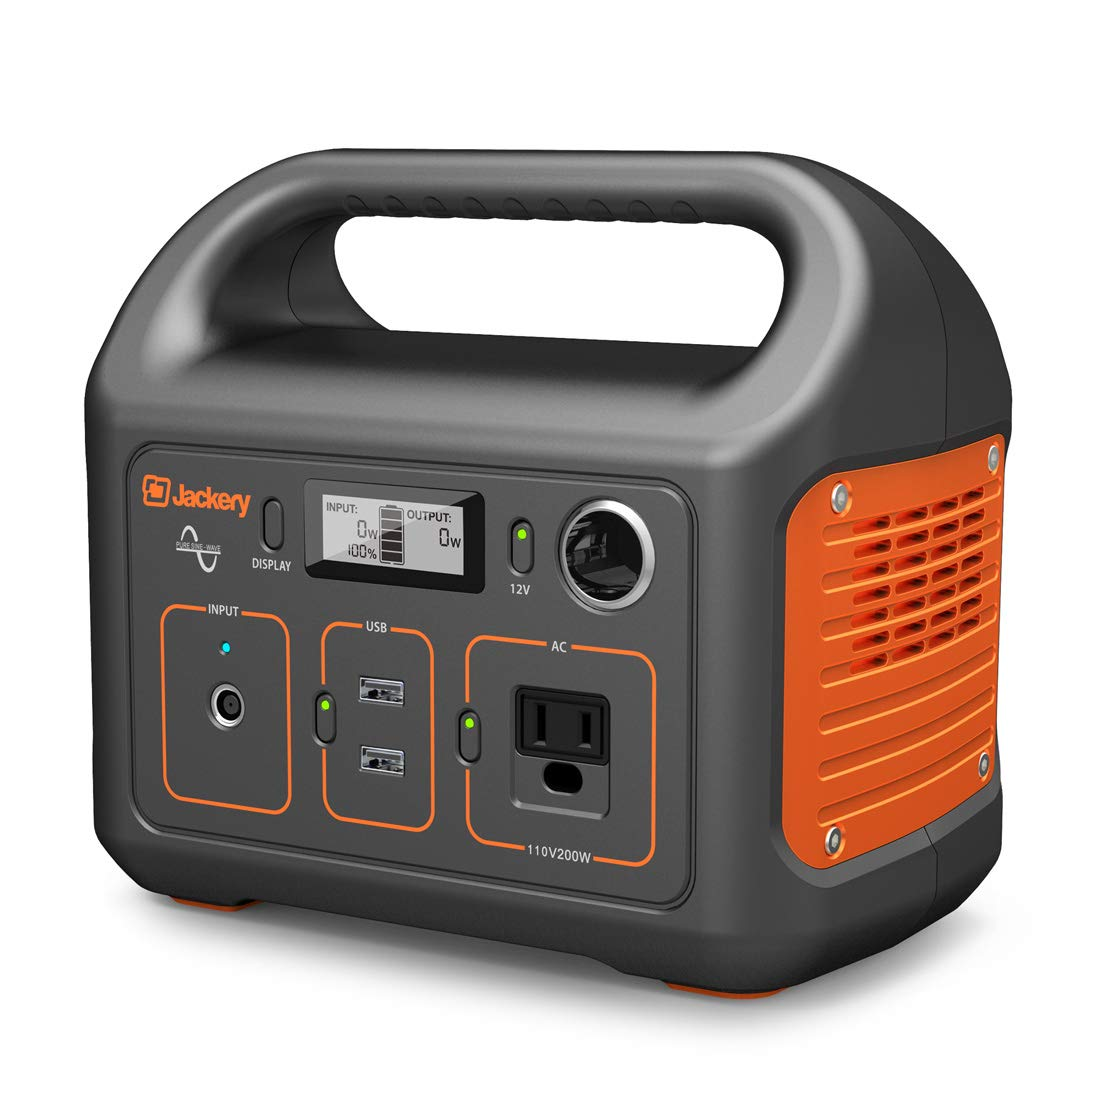 Jackery Portable Power Station Explorer 240, 240Wh Backup Lithium Battery, 110V/200W Pure Sine Wave AC Outlet, Solar…